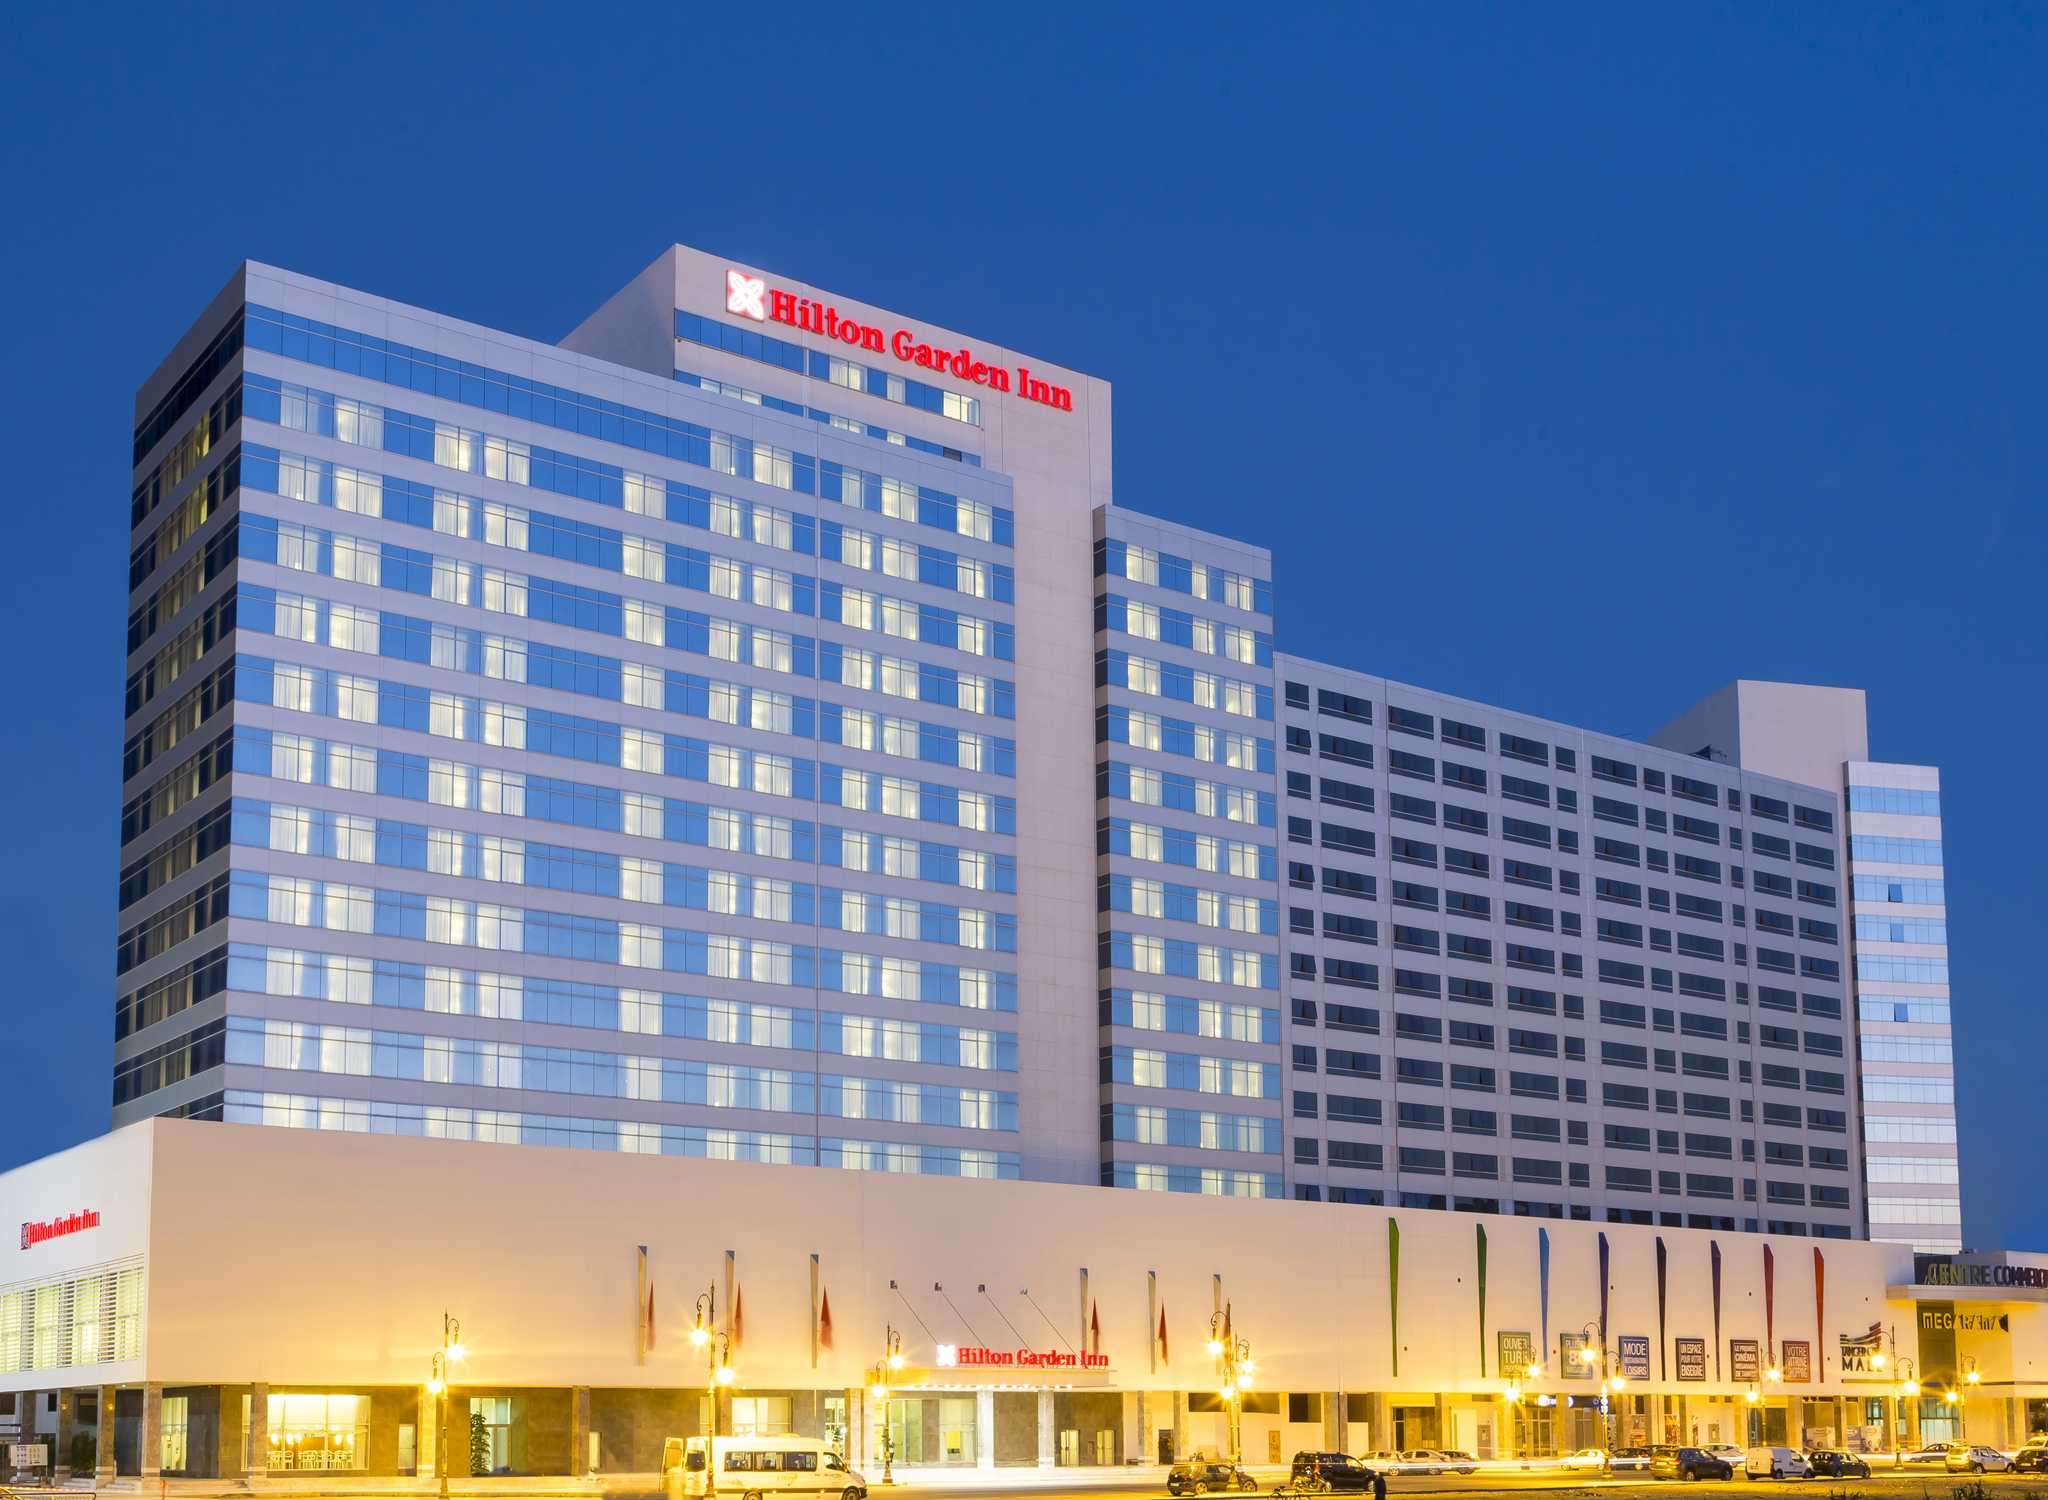 hotel and hilton Homewood suites offers extended stay hotel suites, perfect for your next business or leisure trip.